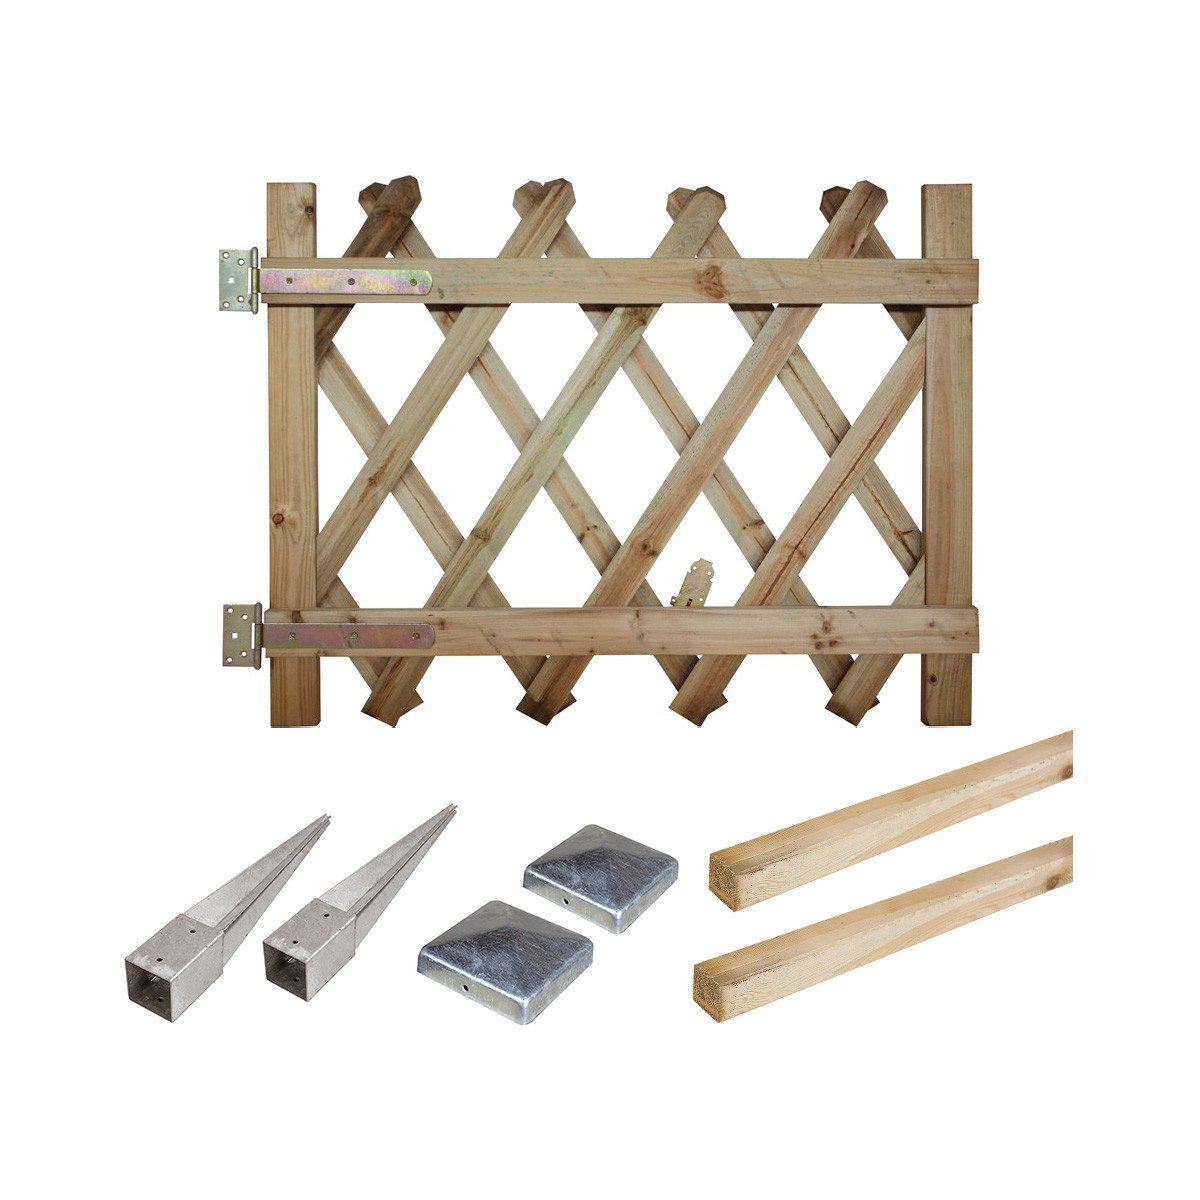 Kit portillon en bois Prunus H 80 cm à enfoncer